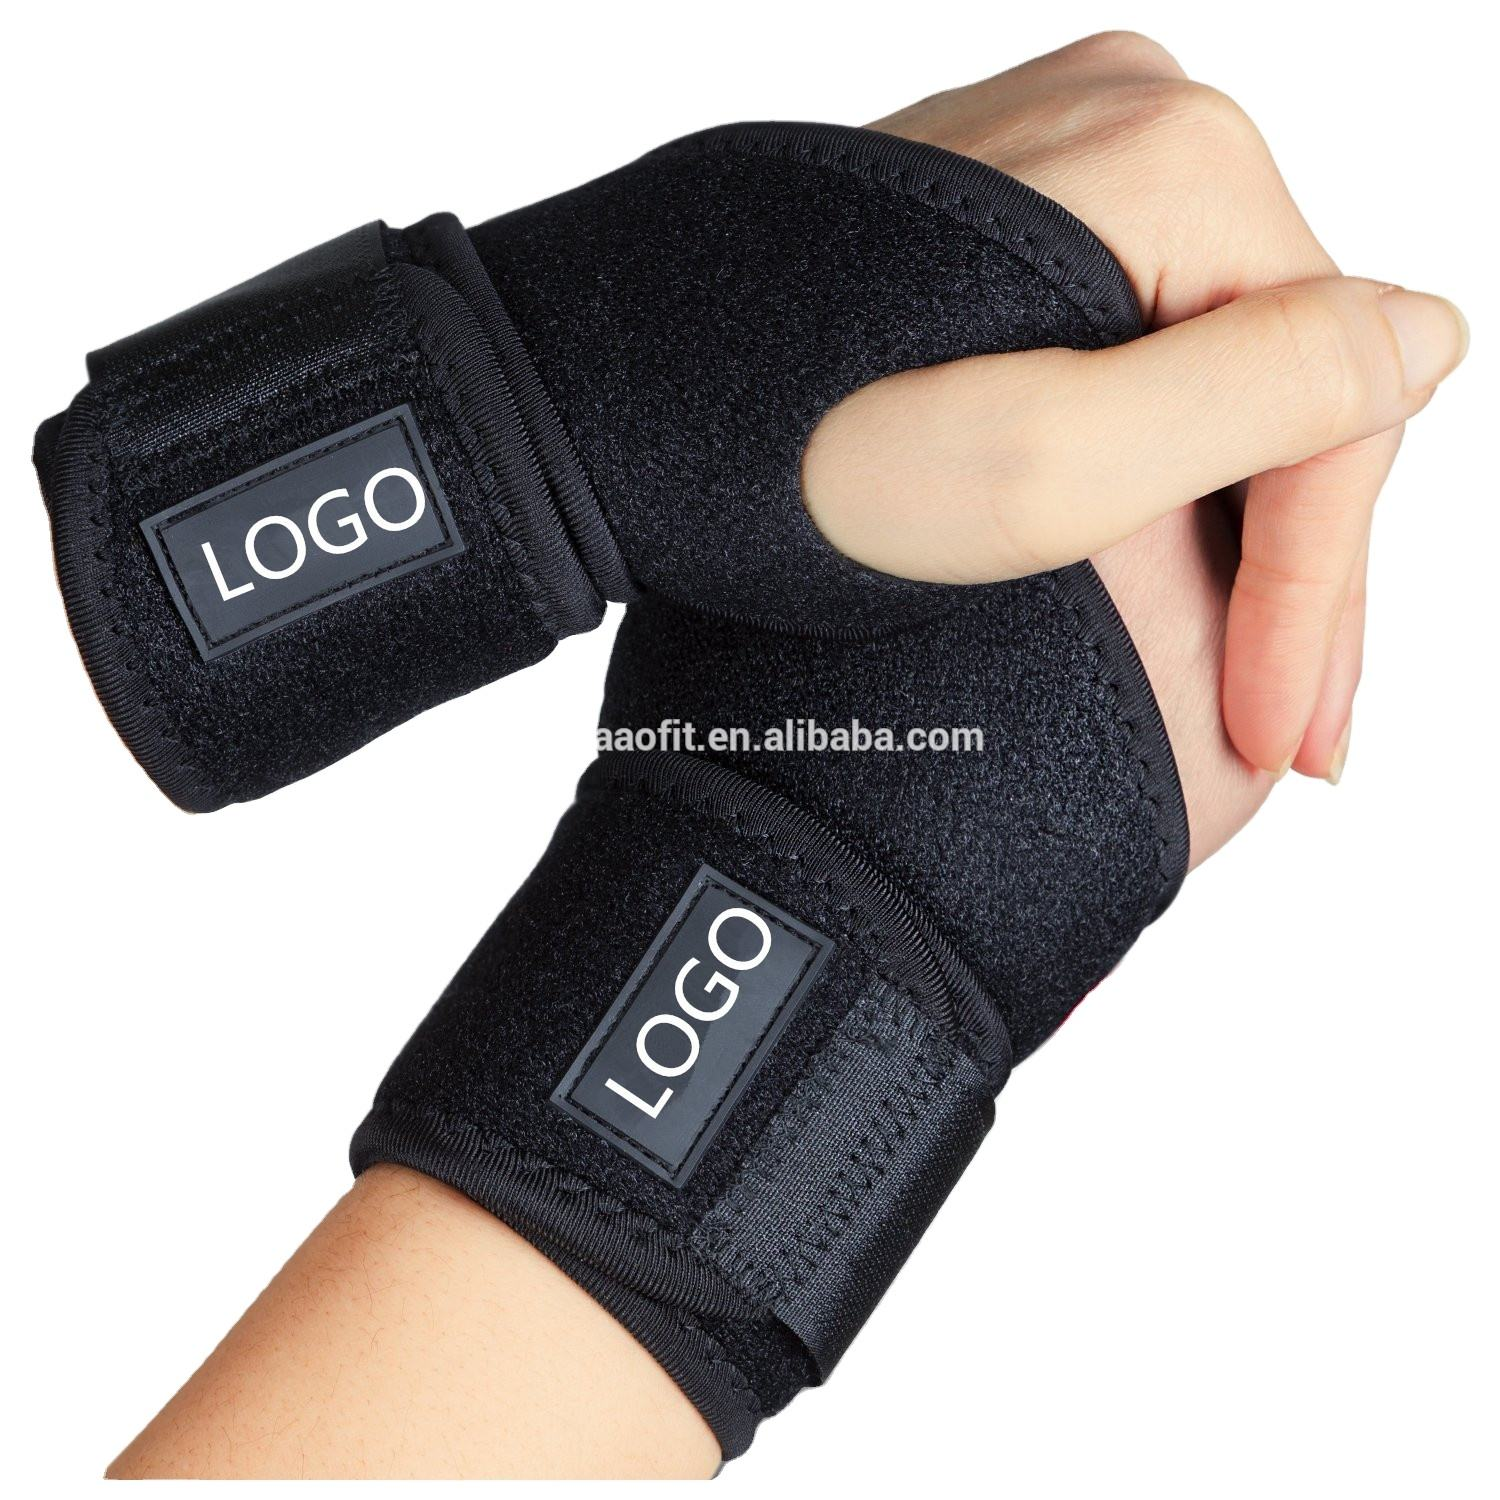 Aofeite Colorful Compression wrist brace and bowling wrist support for gym typing